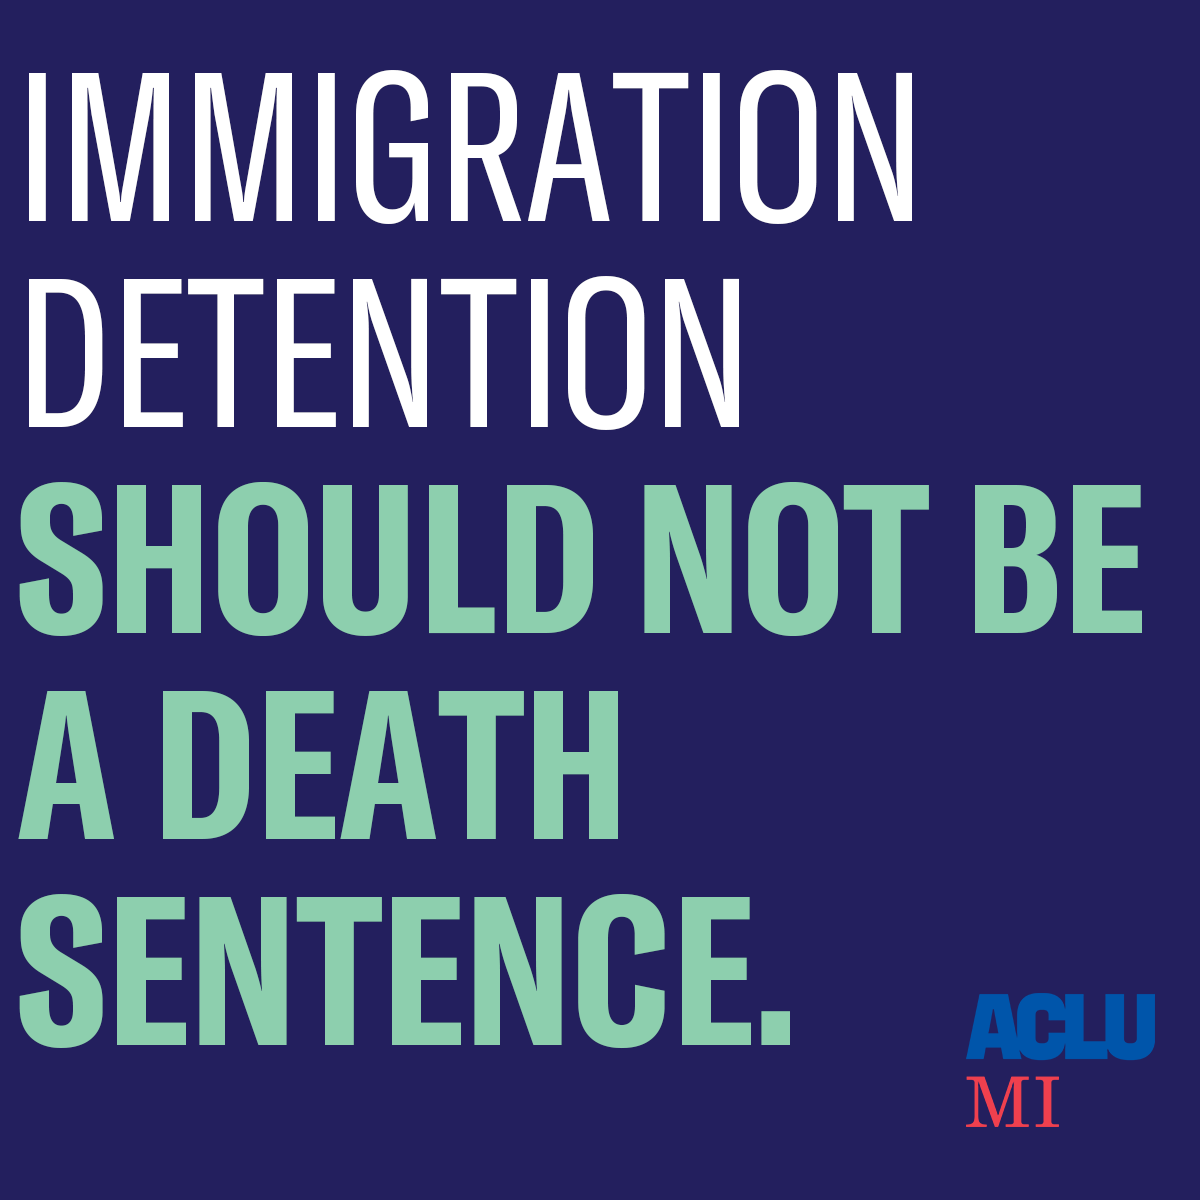 Immigration detention should not be a death sentence.